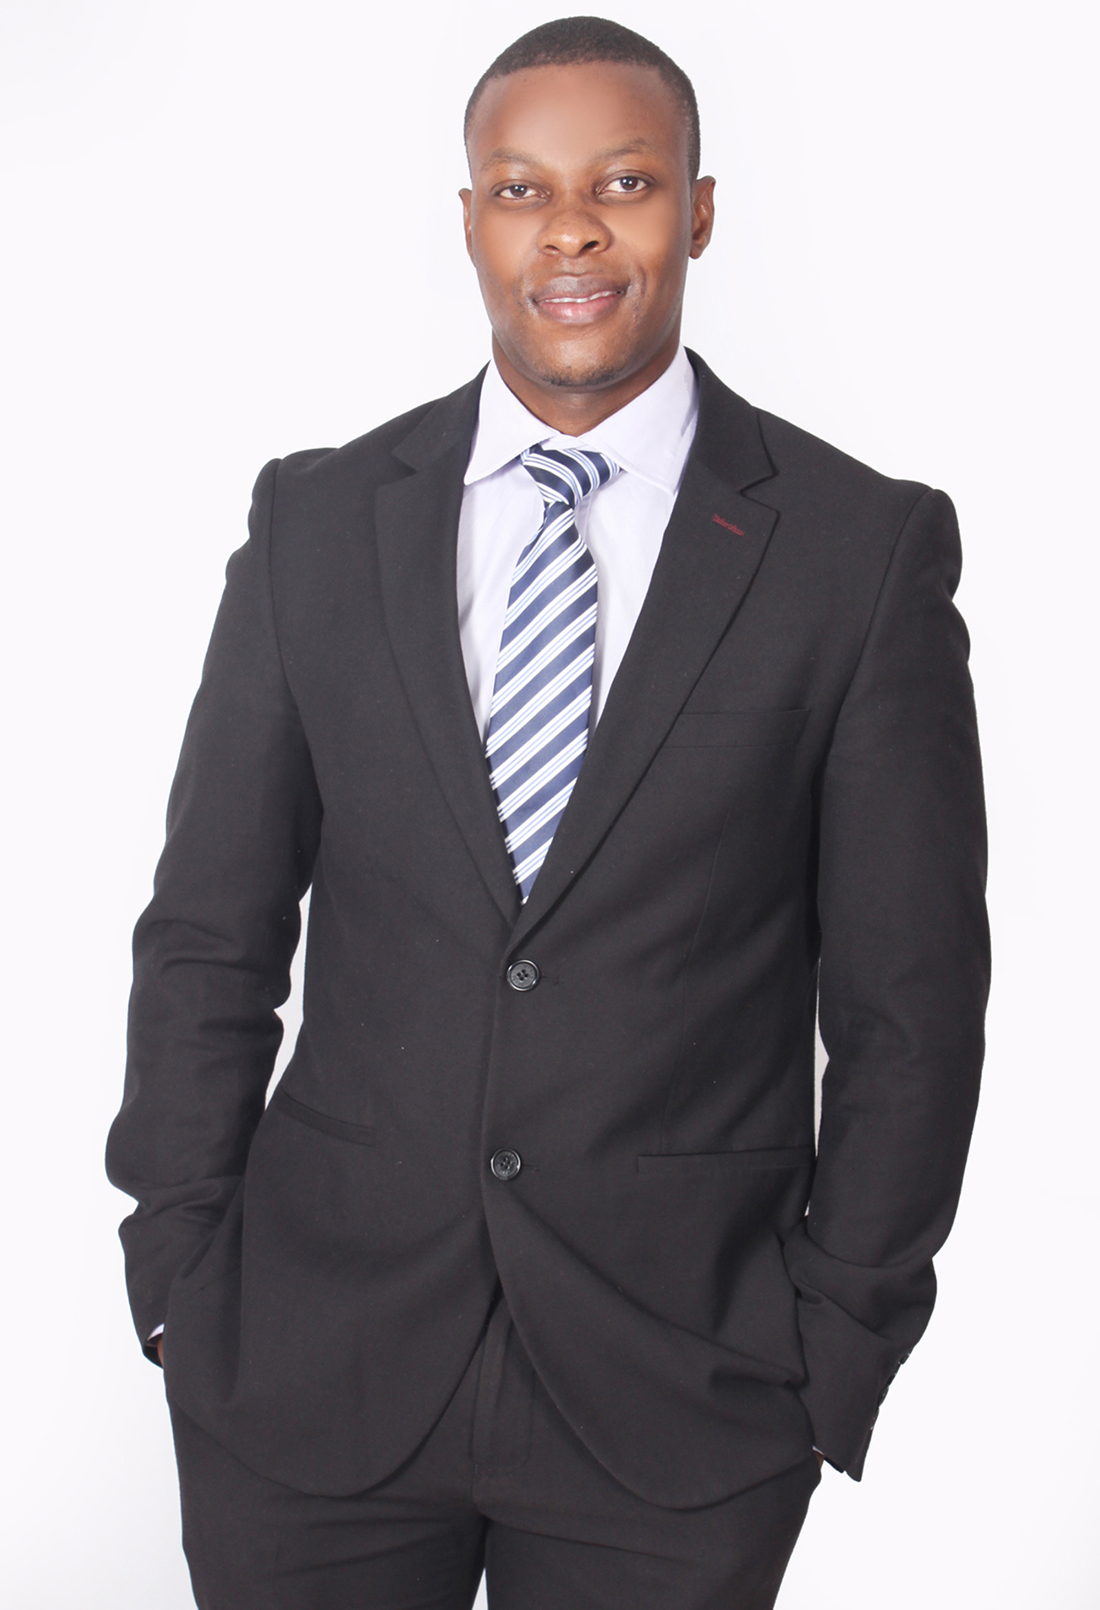 National chairman of the BMF YP, Mandlenkosi Ncube